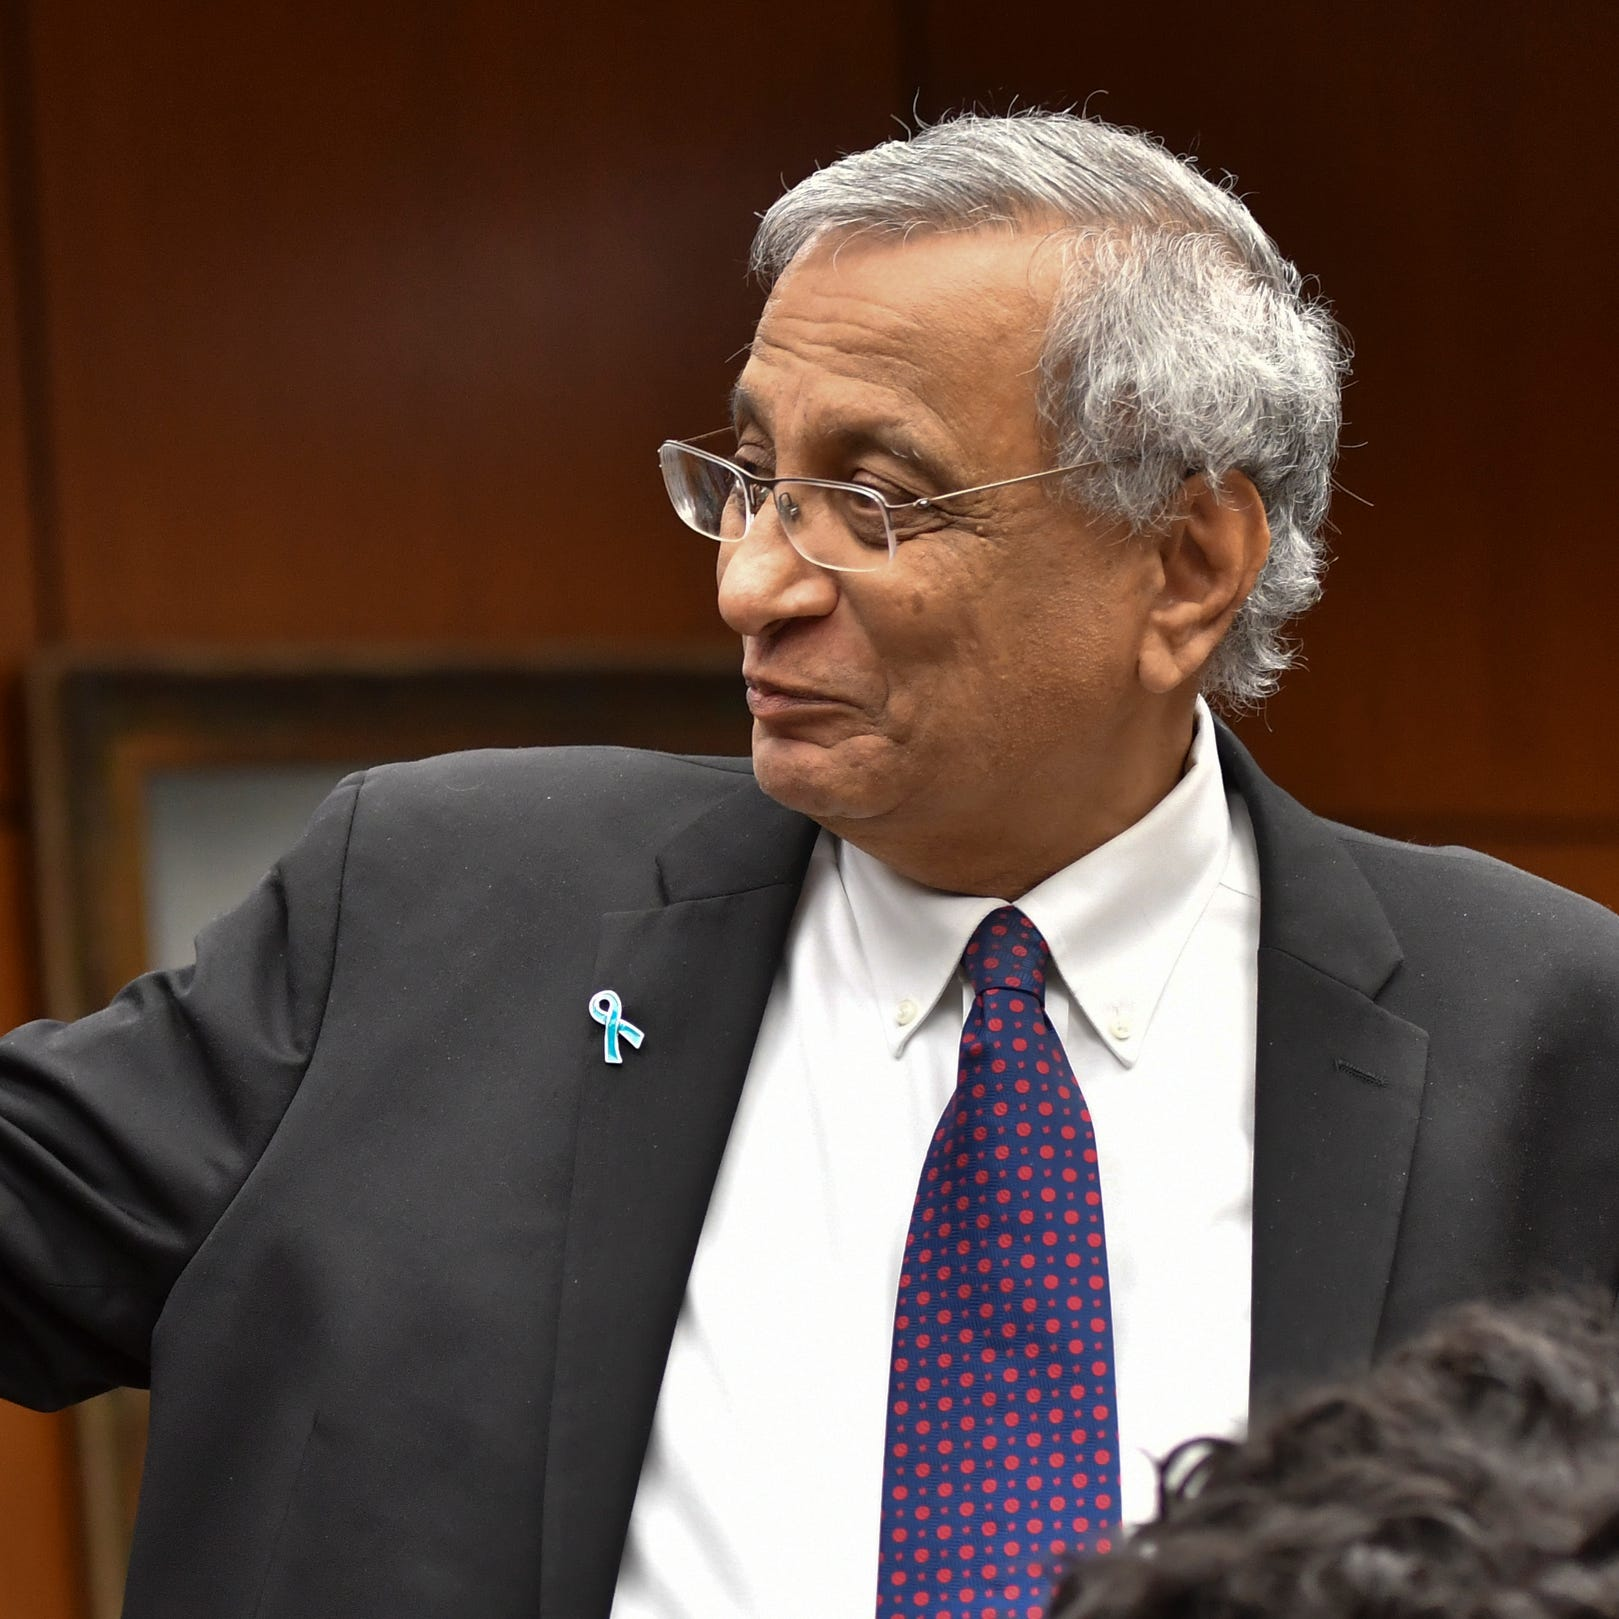 Satish Udpa named Michigan State interim president, replacing Engler